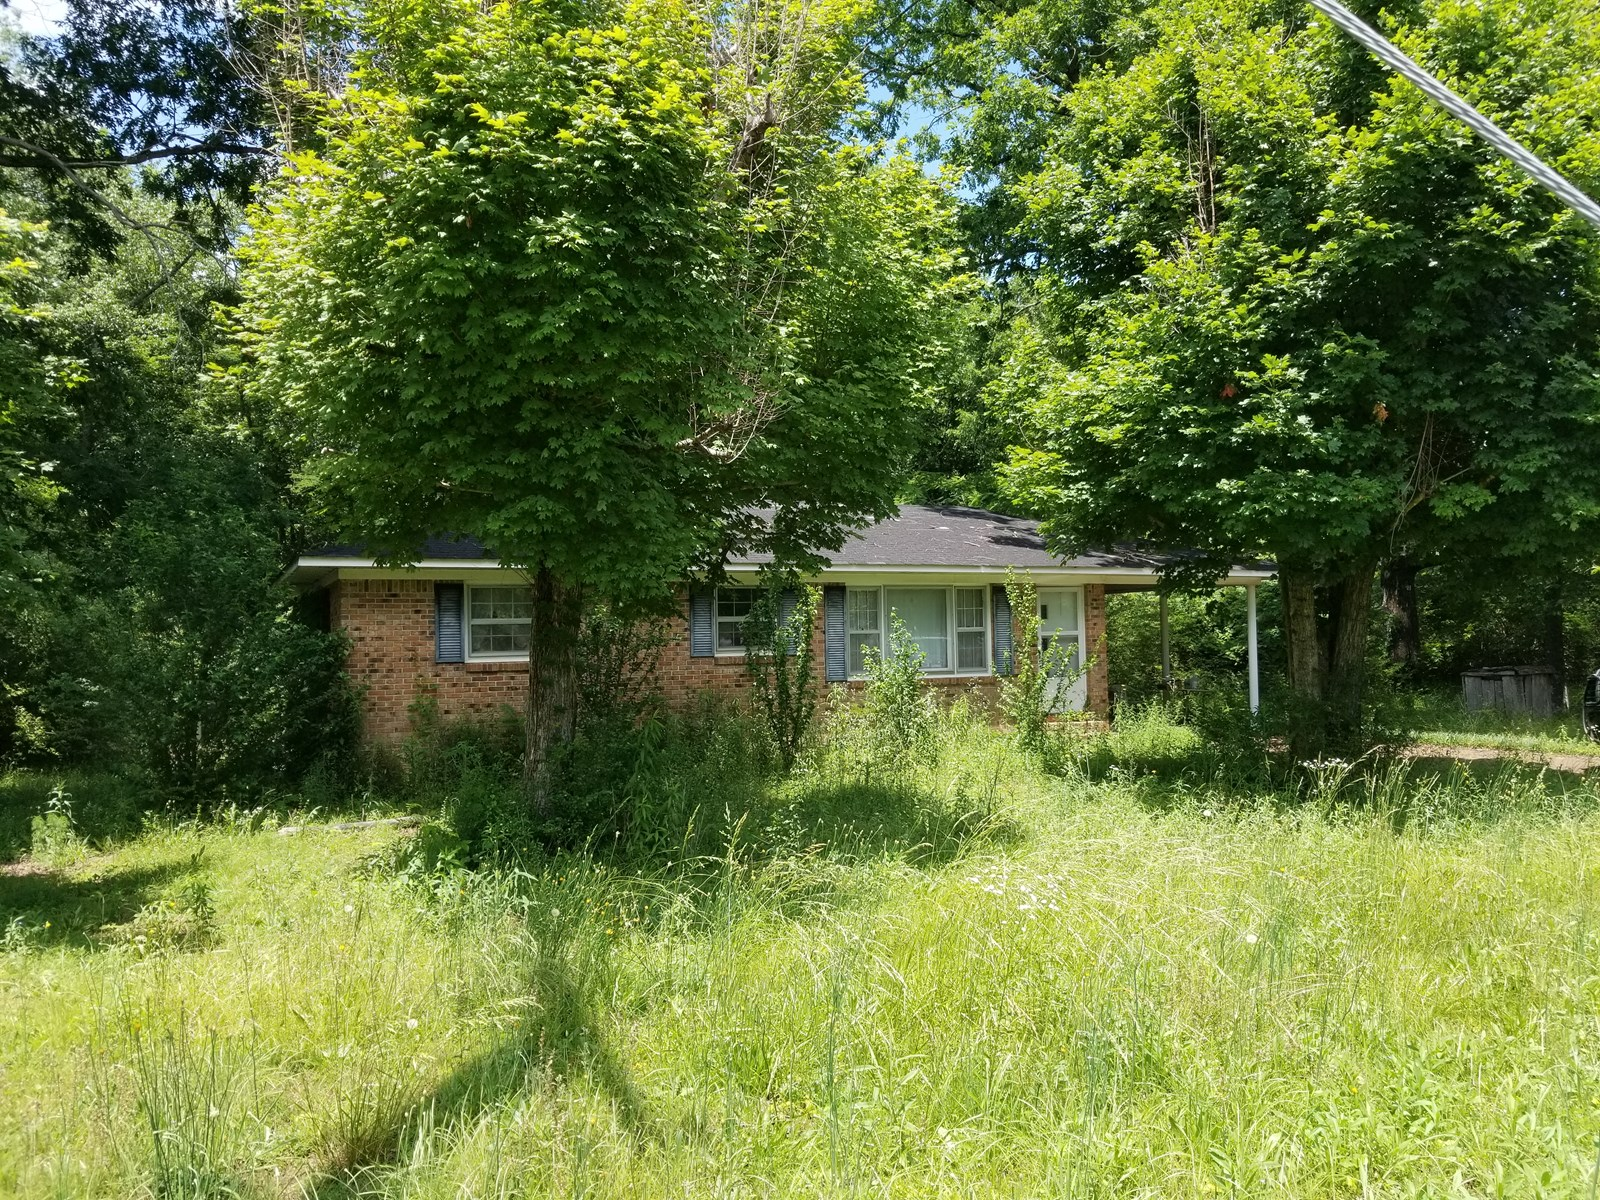 SOLD! COLLINWOOD TN BRICK HOME LAND 3 BEDROOM 1 BATH